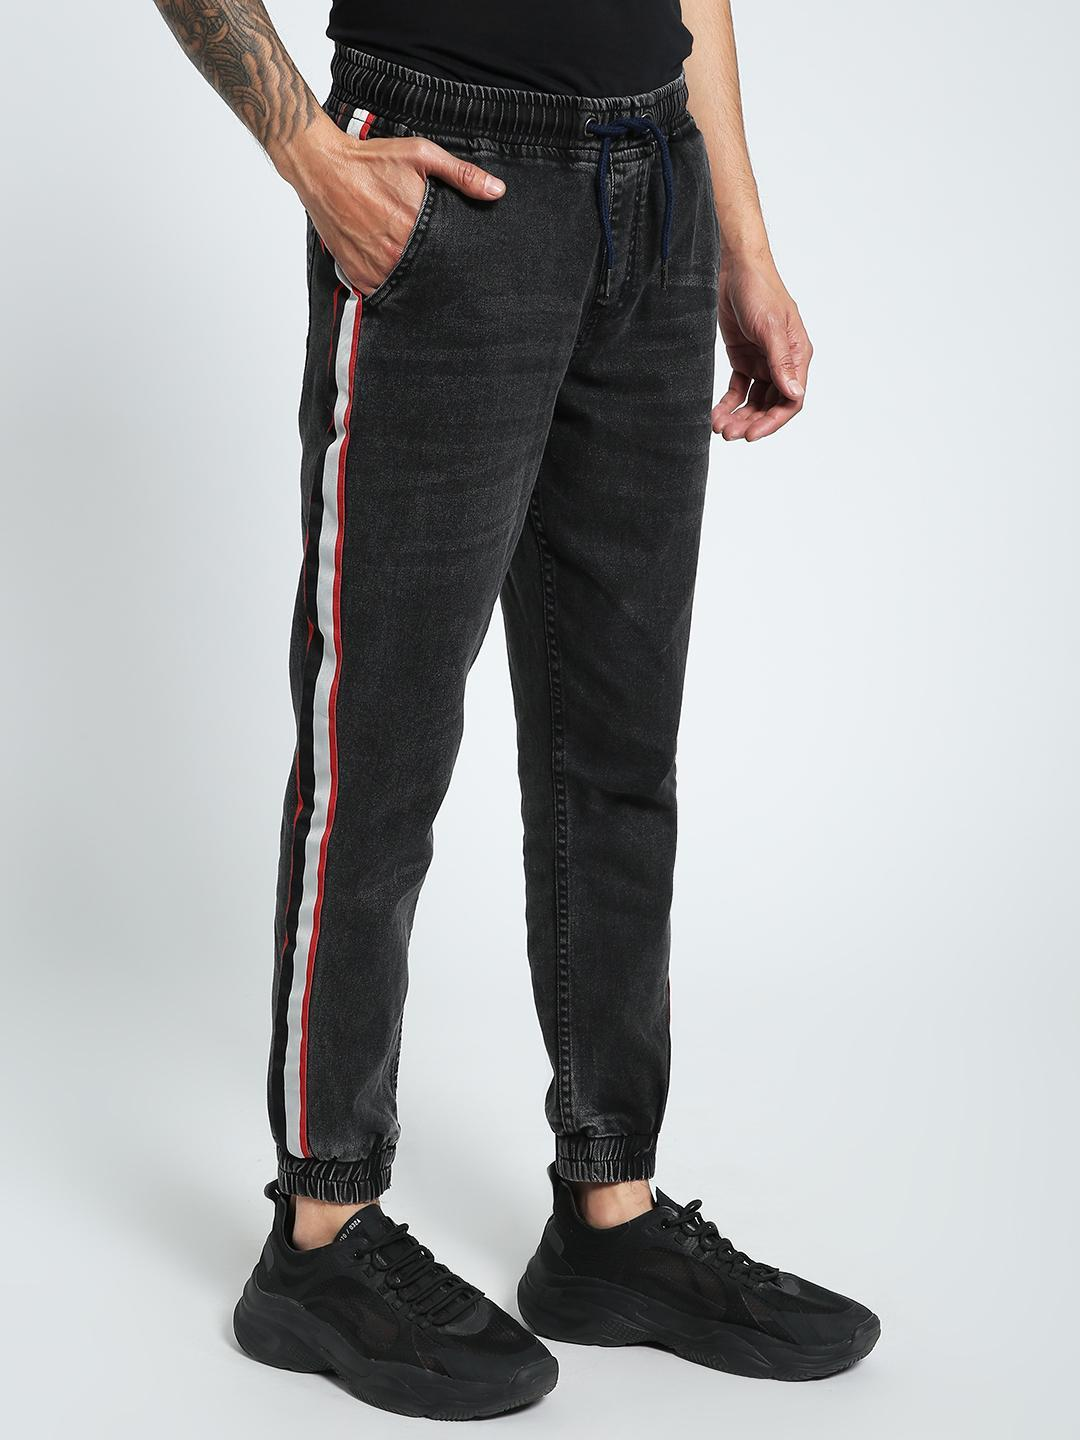 CHELSEA KING Black Contrast Side Tape Denim Joggers 1